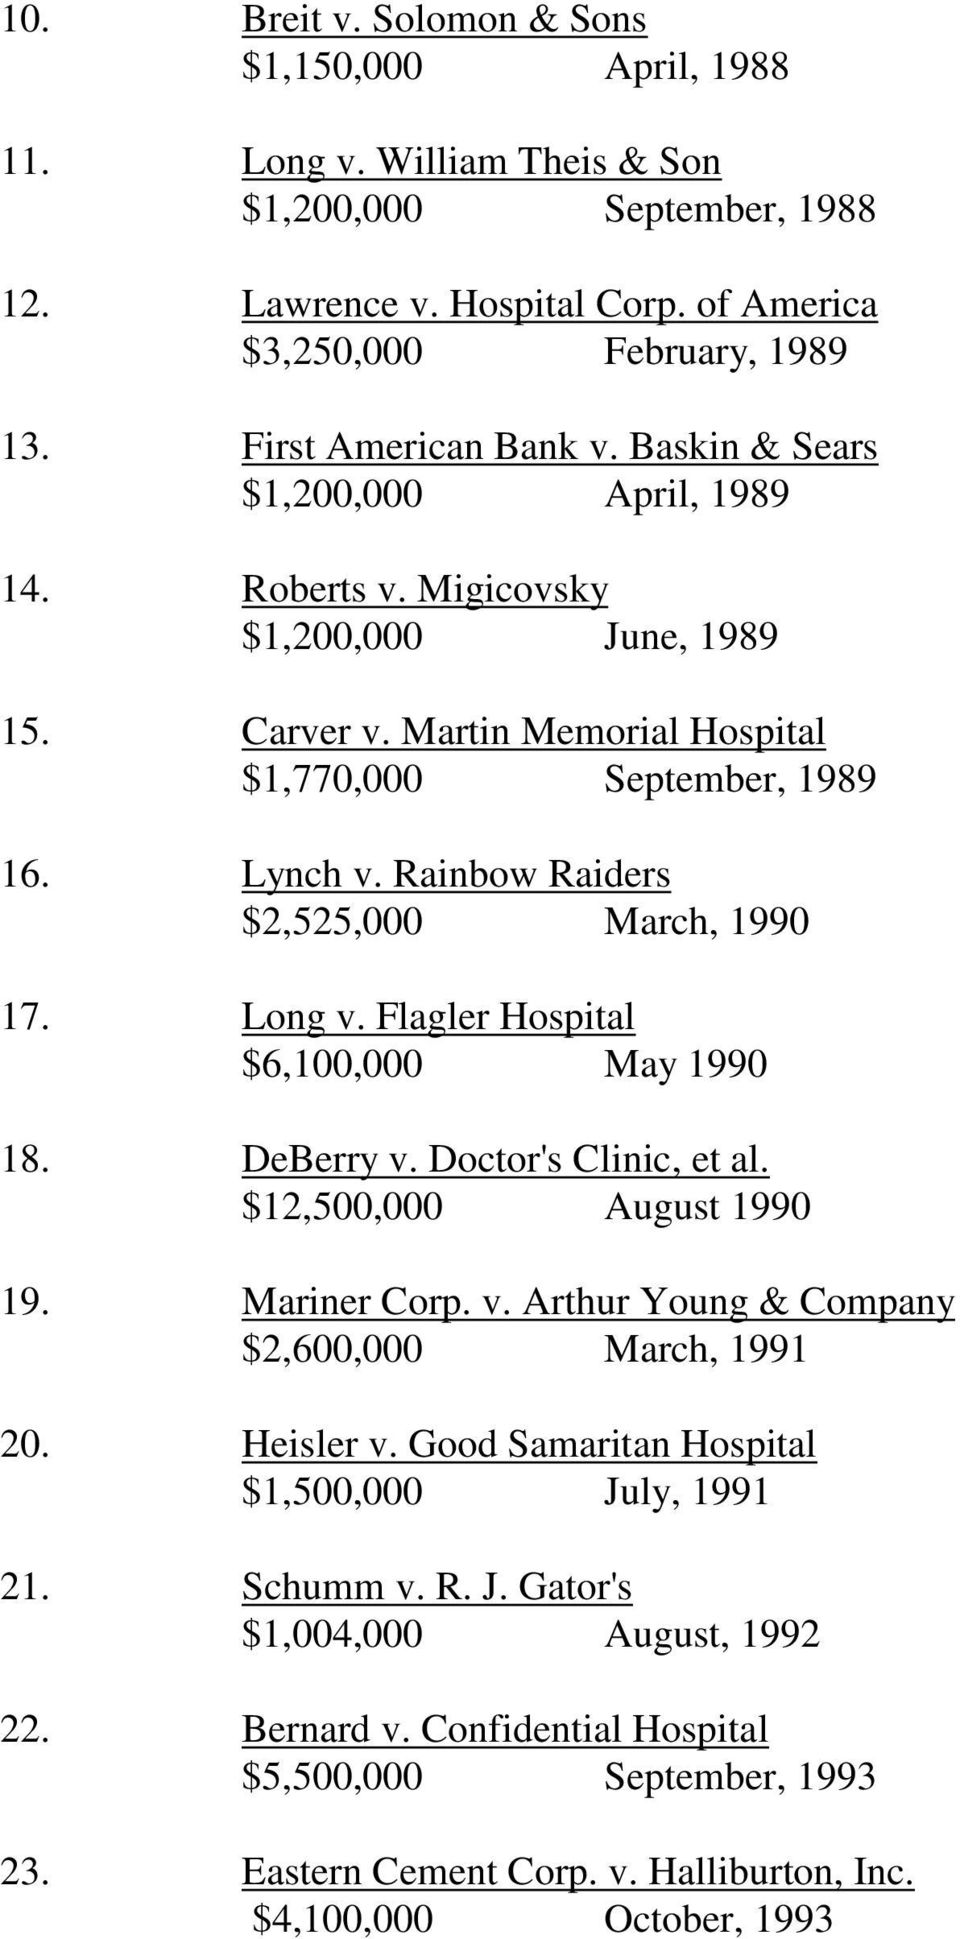 Rainbow Raiders $2,525,000 March, 1990 17. Long v. Flagler Hospital $6,100,000 May 1990 18. DeBerry v. Doctor's Clinic, et al. $12,500,000 August 1990 19. Mariner Corp. v. Arthur Young & Company $2,600,000 March, 1991 20.